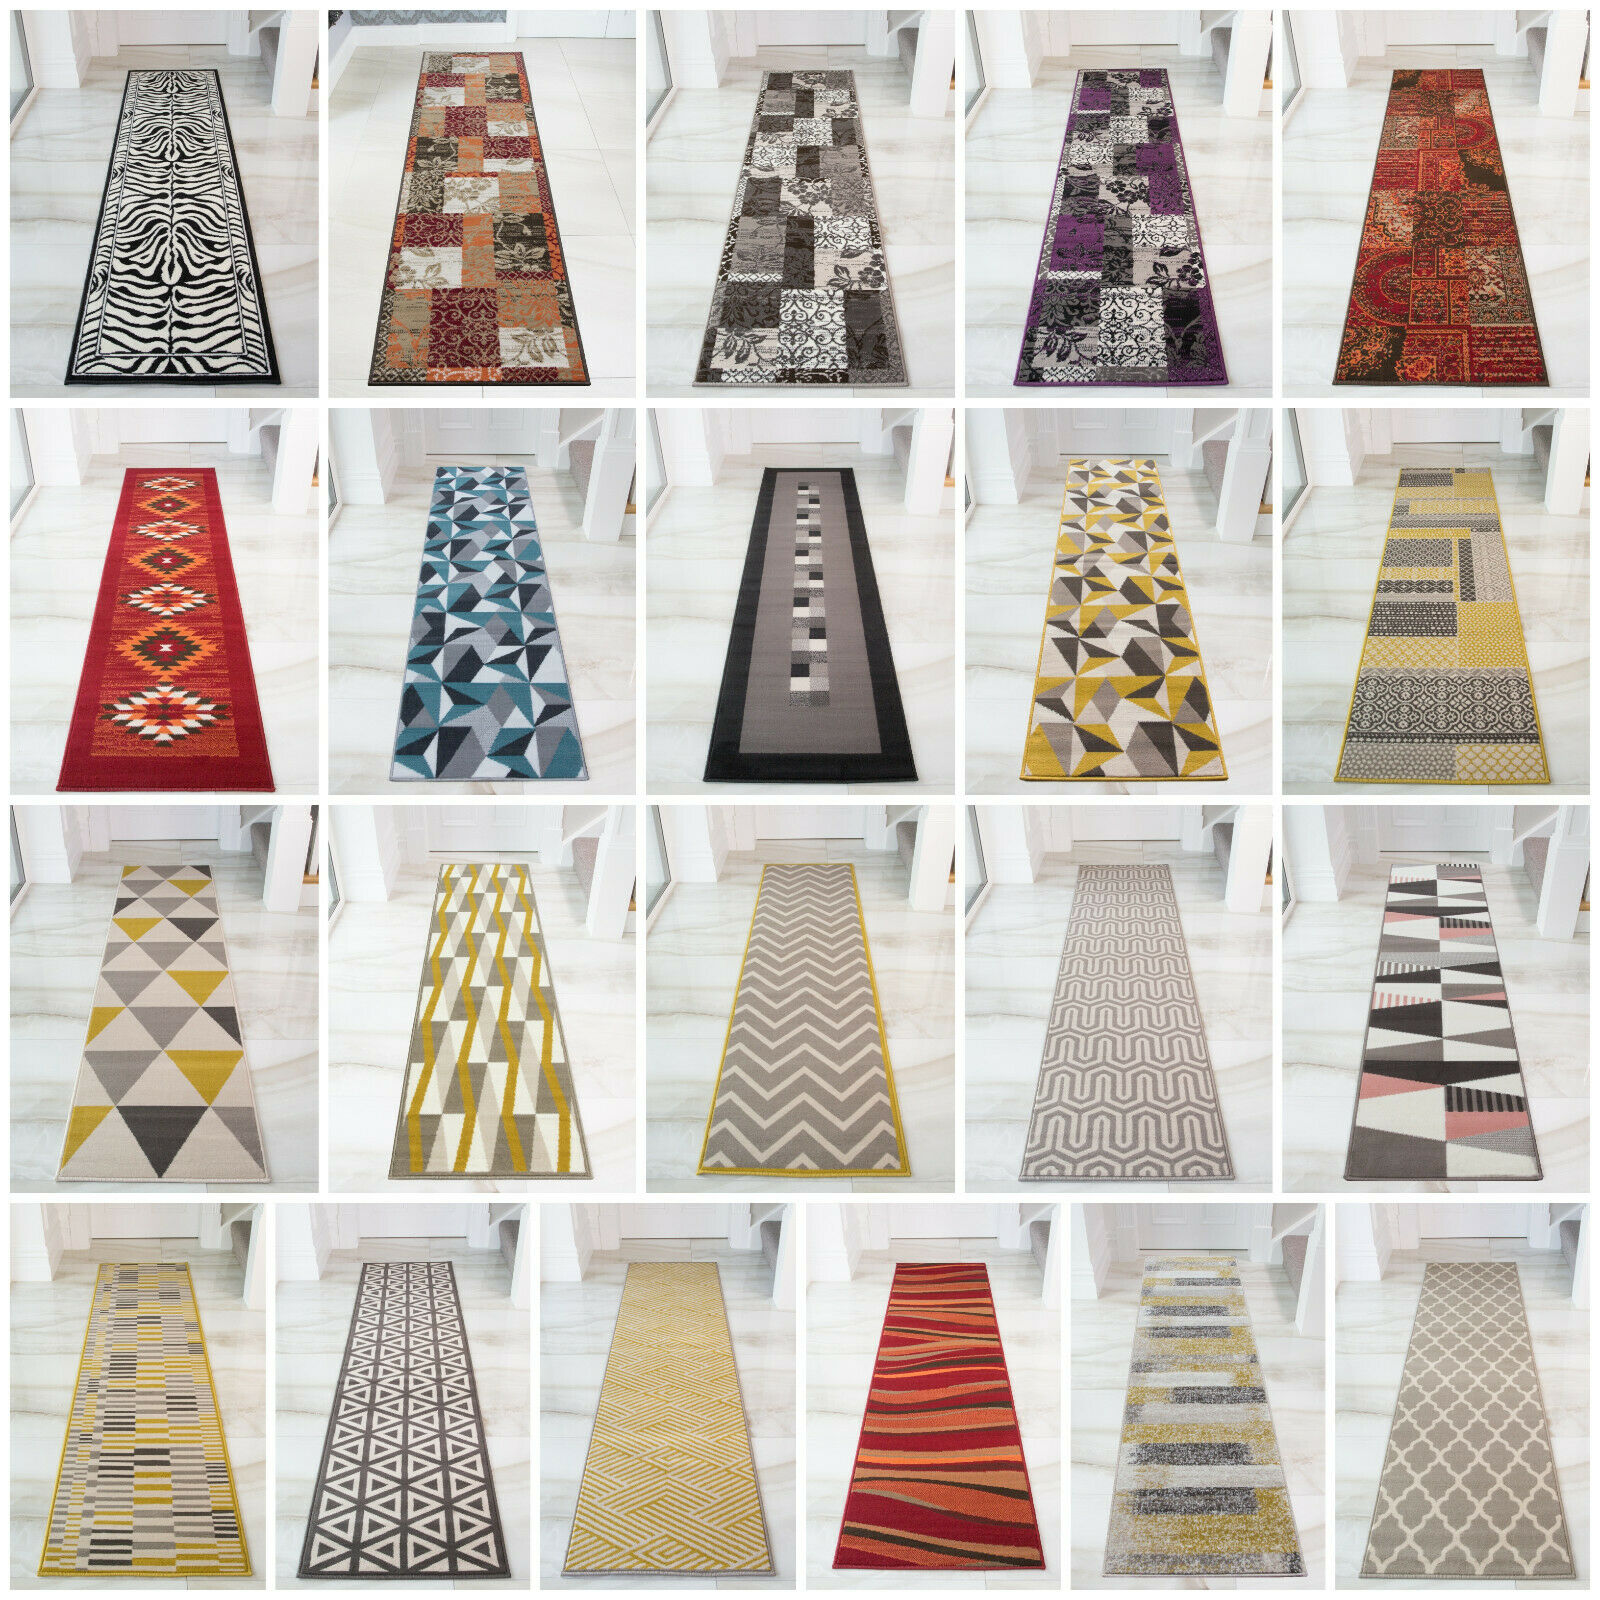 Modern Traditional Long Narrow Hallway Runner Rugs Thin Affordable Hall Runners 1 Of 1free Shipping See More